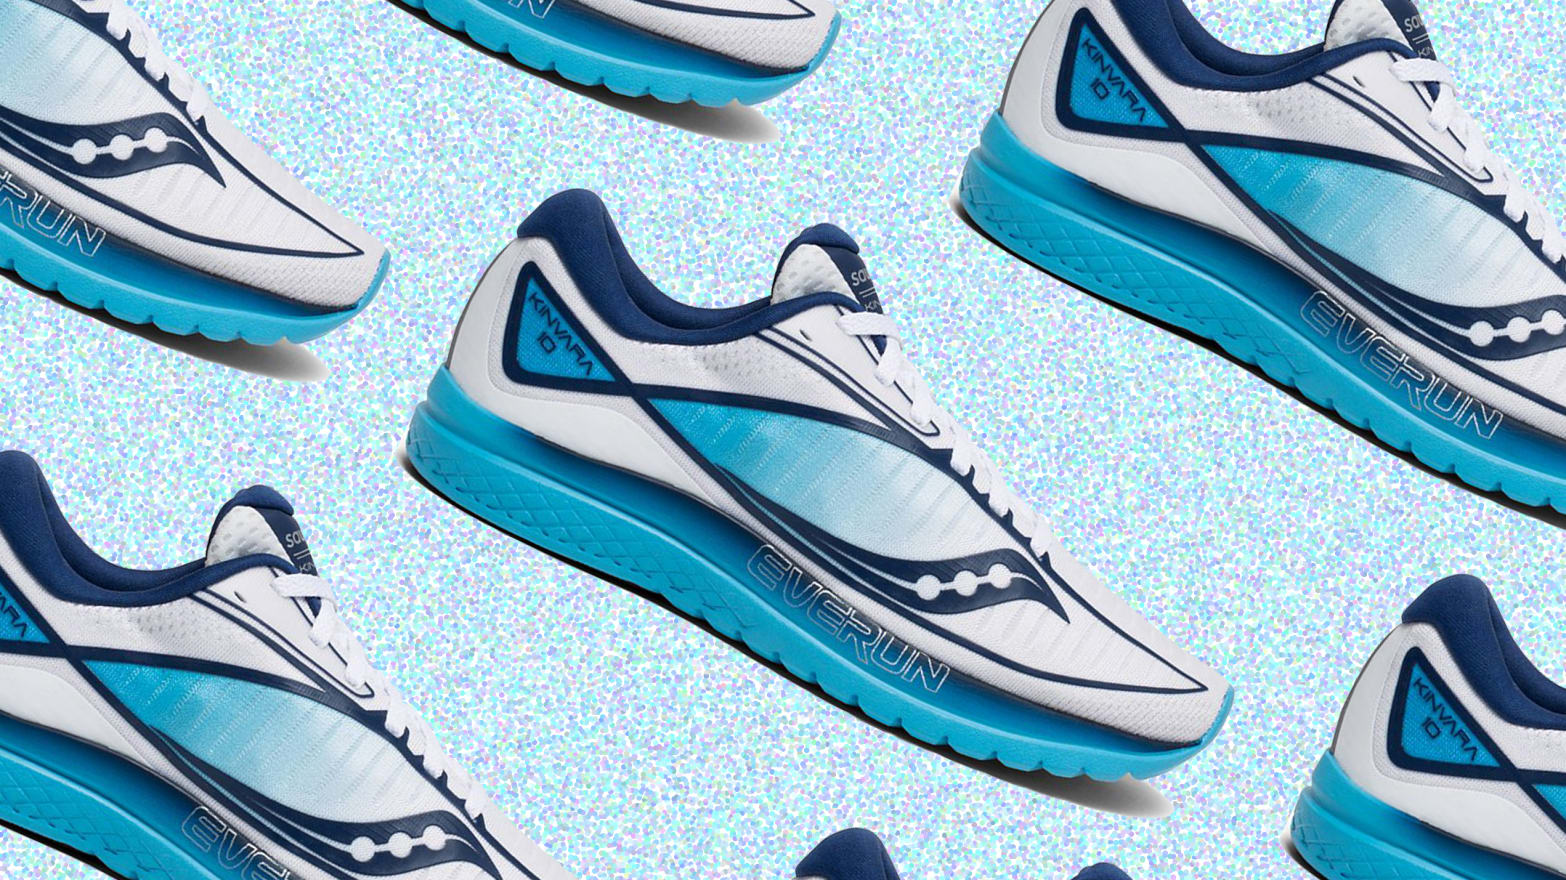 1f05e8f6f3741 Saucony Releases Special Edition Kinvara 10 To Celebrate Its Anniversary